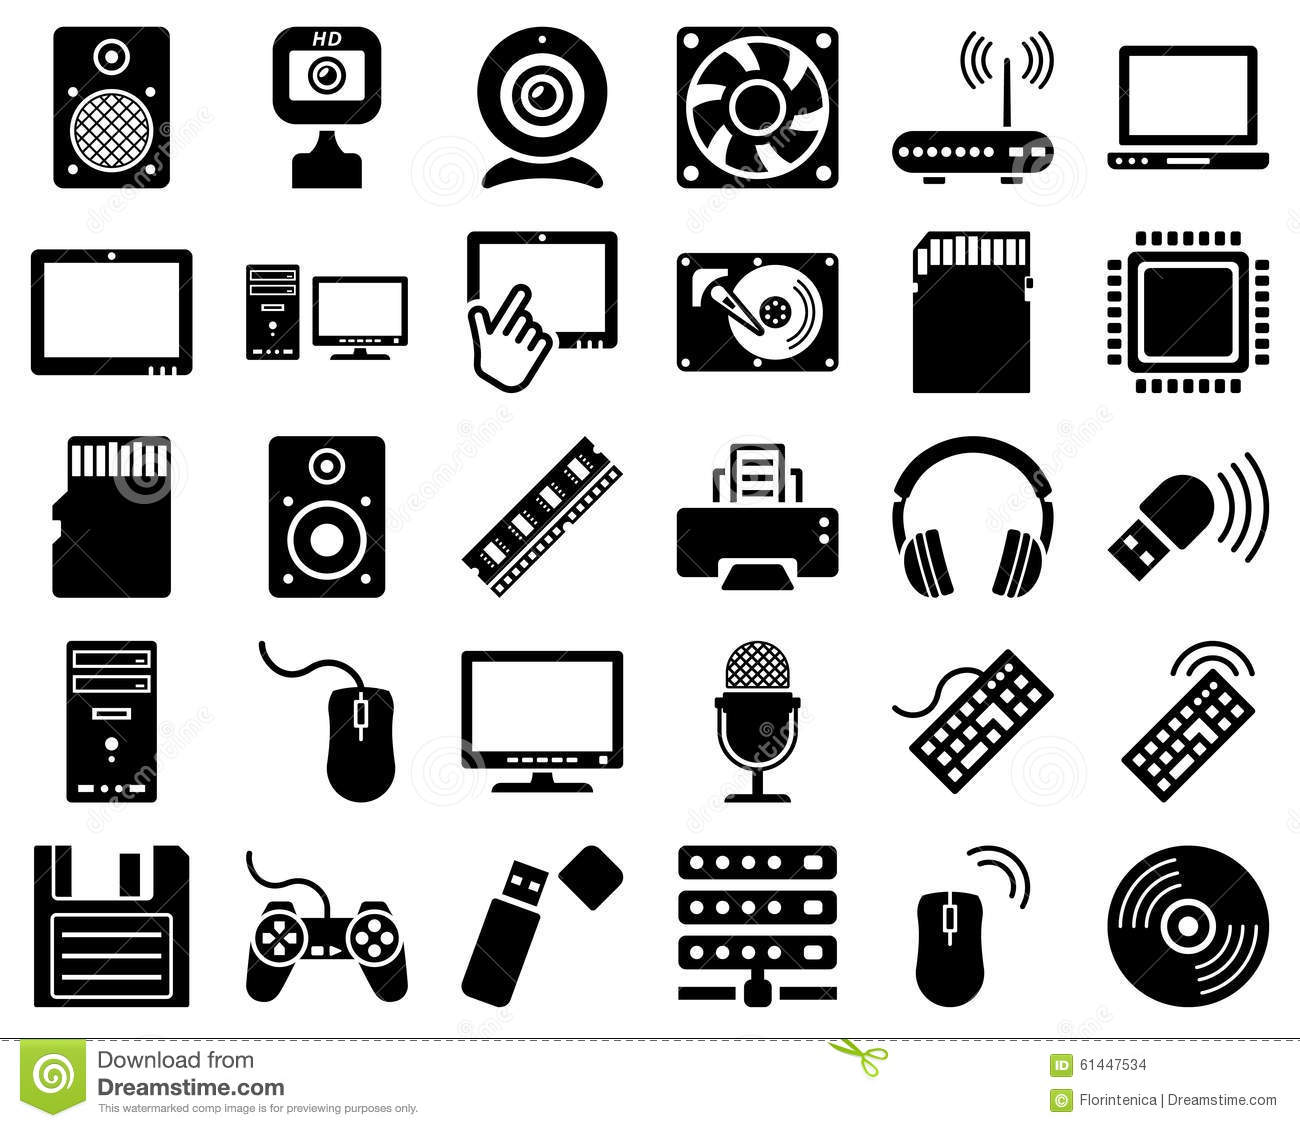 Computer Hardware Icon Set Stock Vector - Image: 61447534